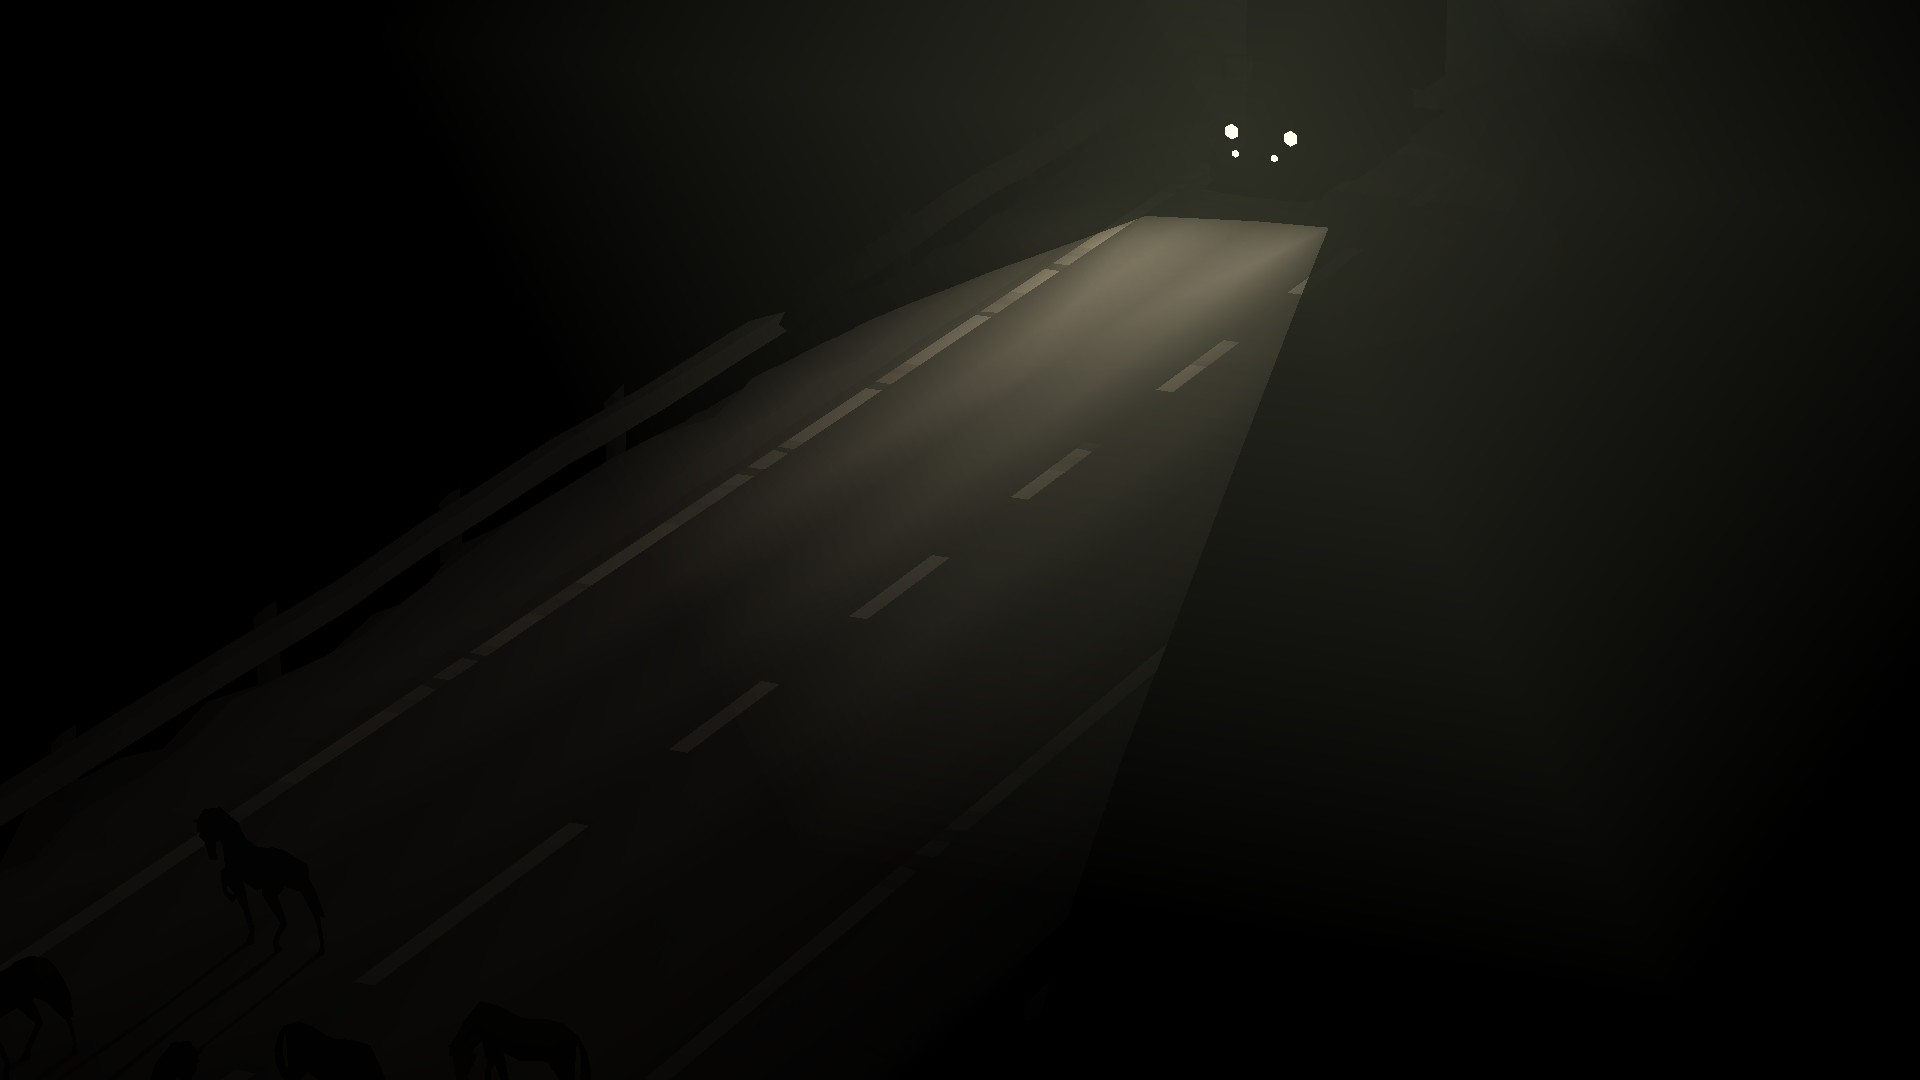 The lights of a truck reveal an empty highway.